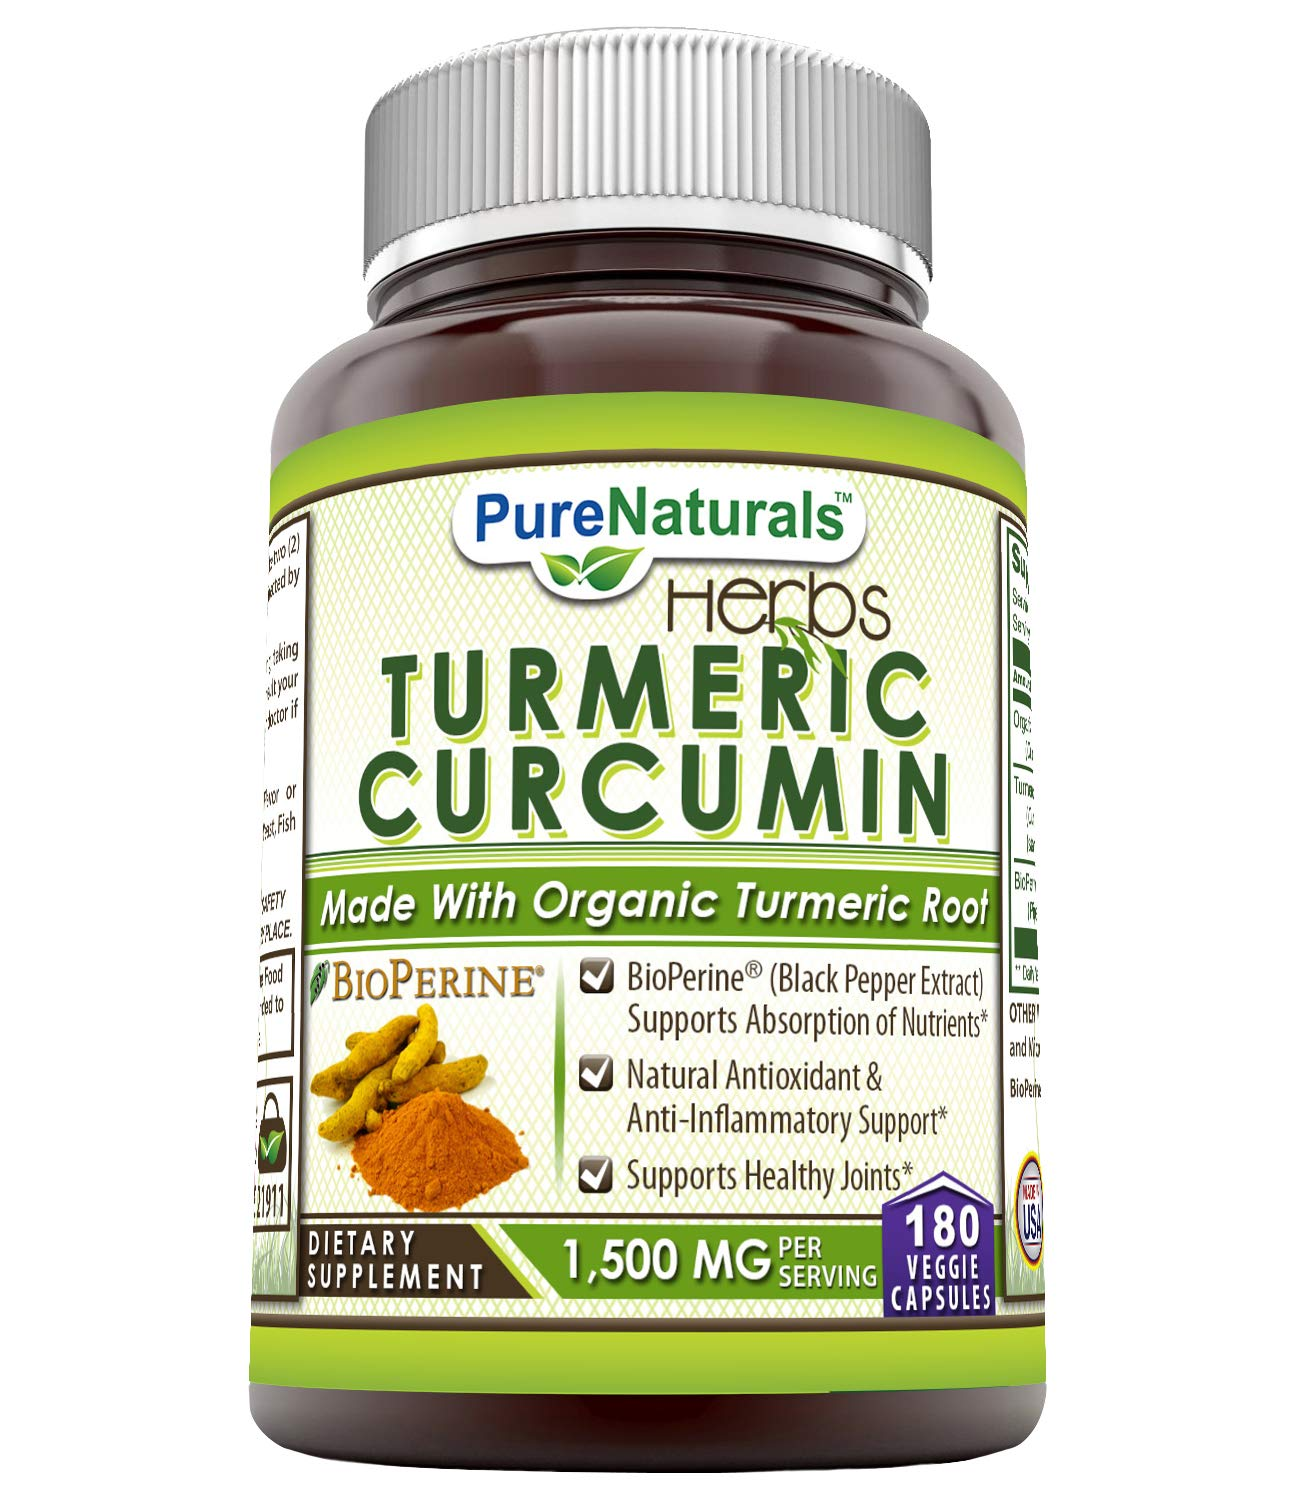 Pure Naturals Turmeric Curcumin with BioPerine, 1500 Mg Per Serving 180 Veggie Capsules – Bioperine (Black Pepper Extract Supports Absorption of Nutrients* Natural Antioxidants of Nutrients